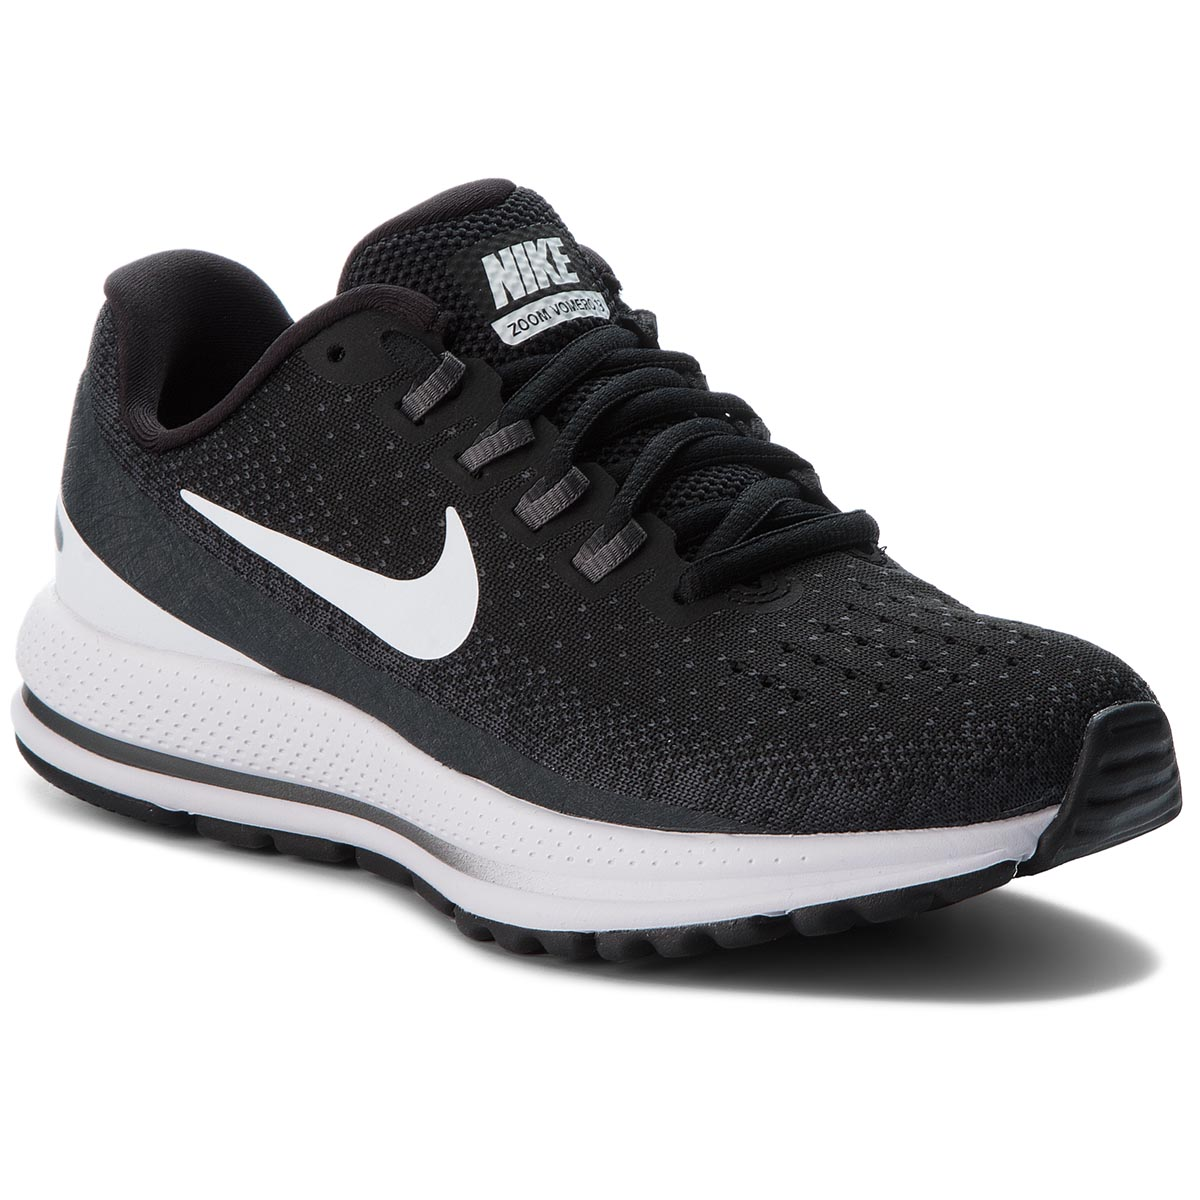 Buty NIKE - Air Zoom Vomero 13 922909 001 Black/White/Anthracite